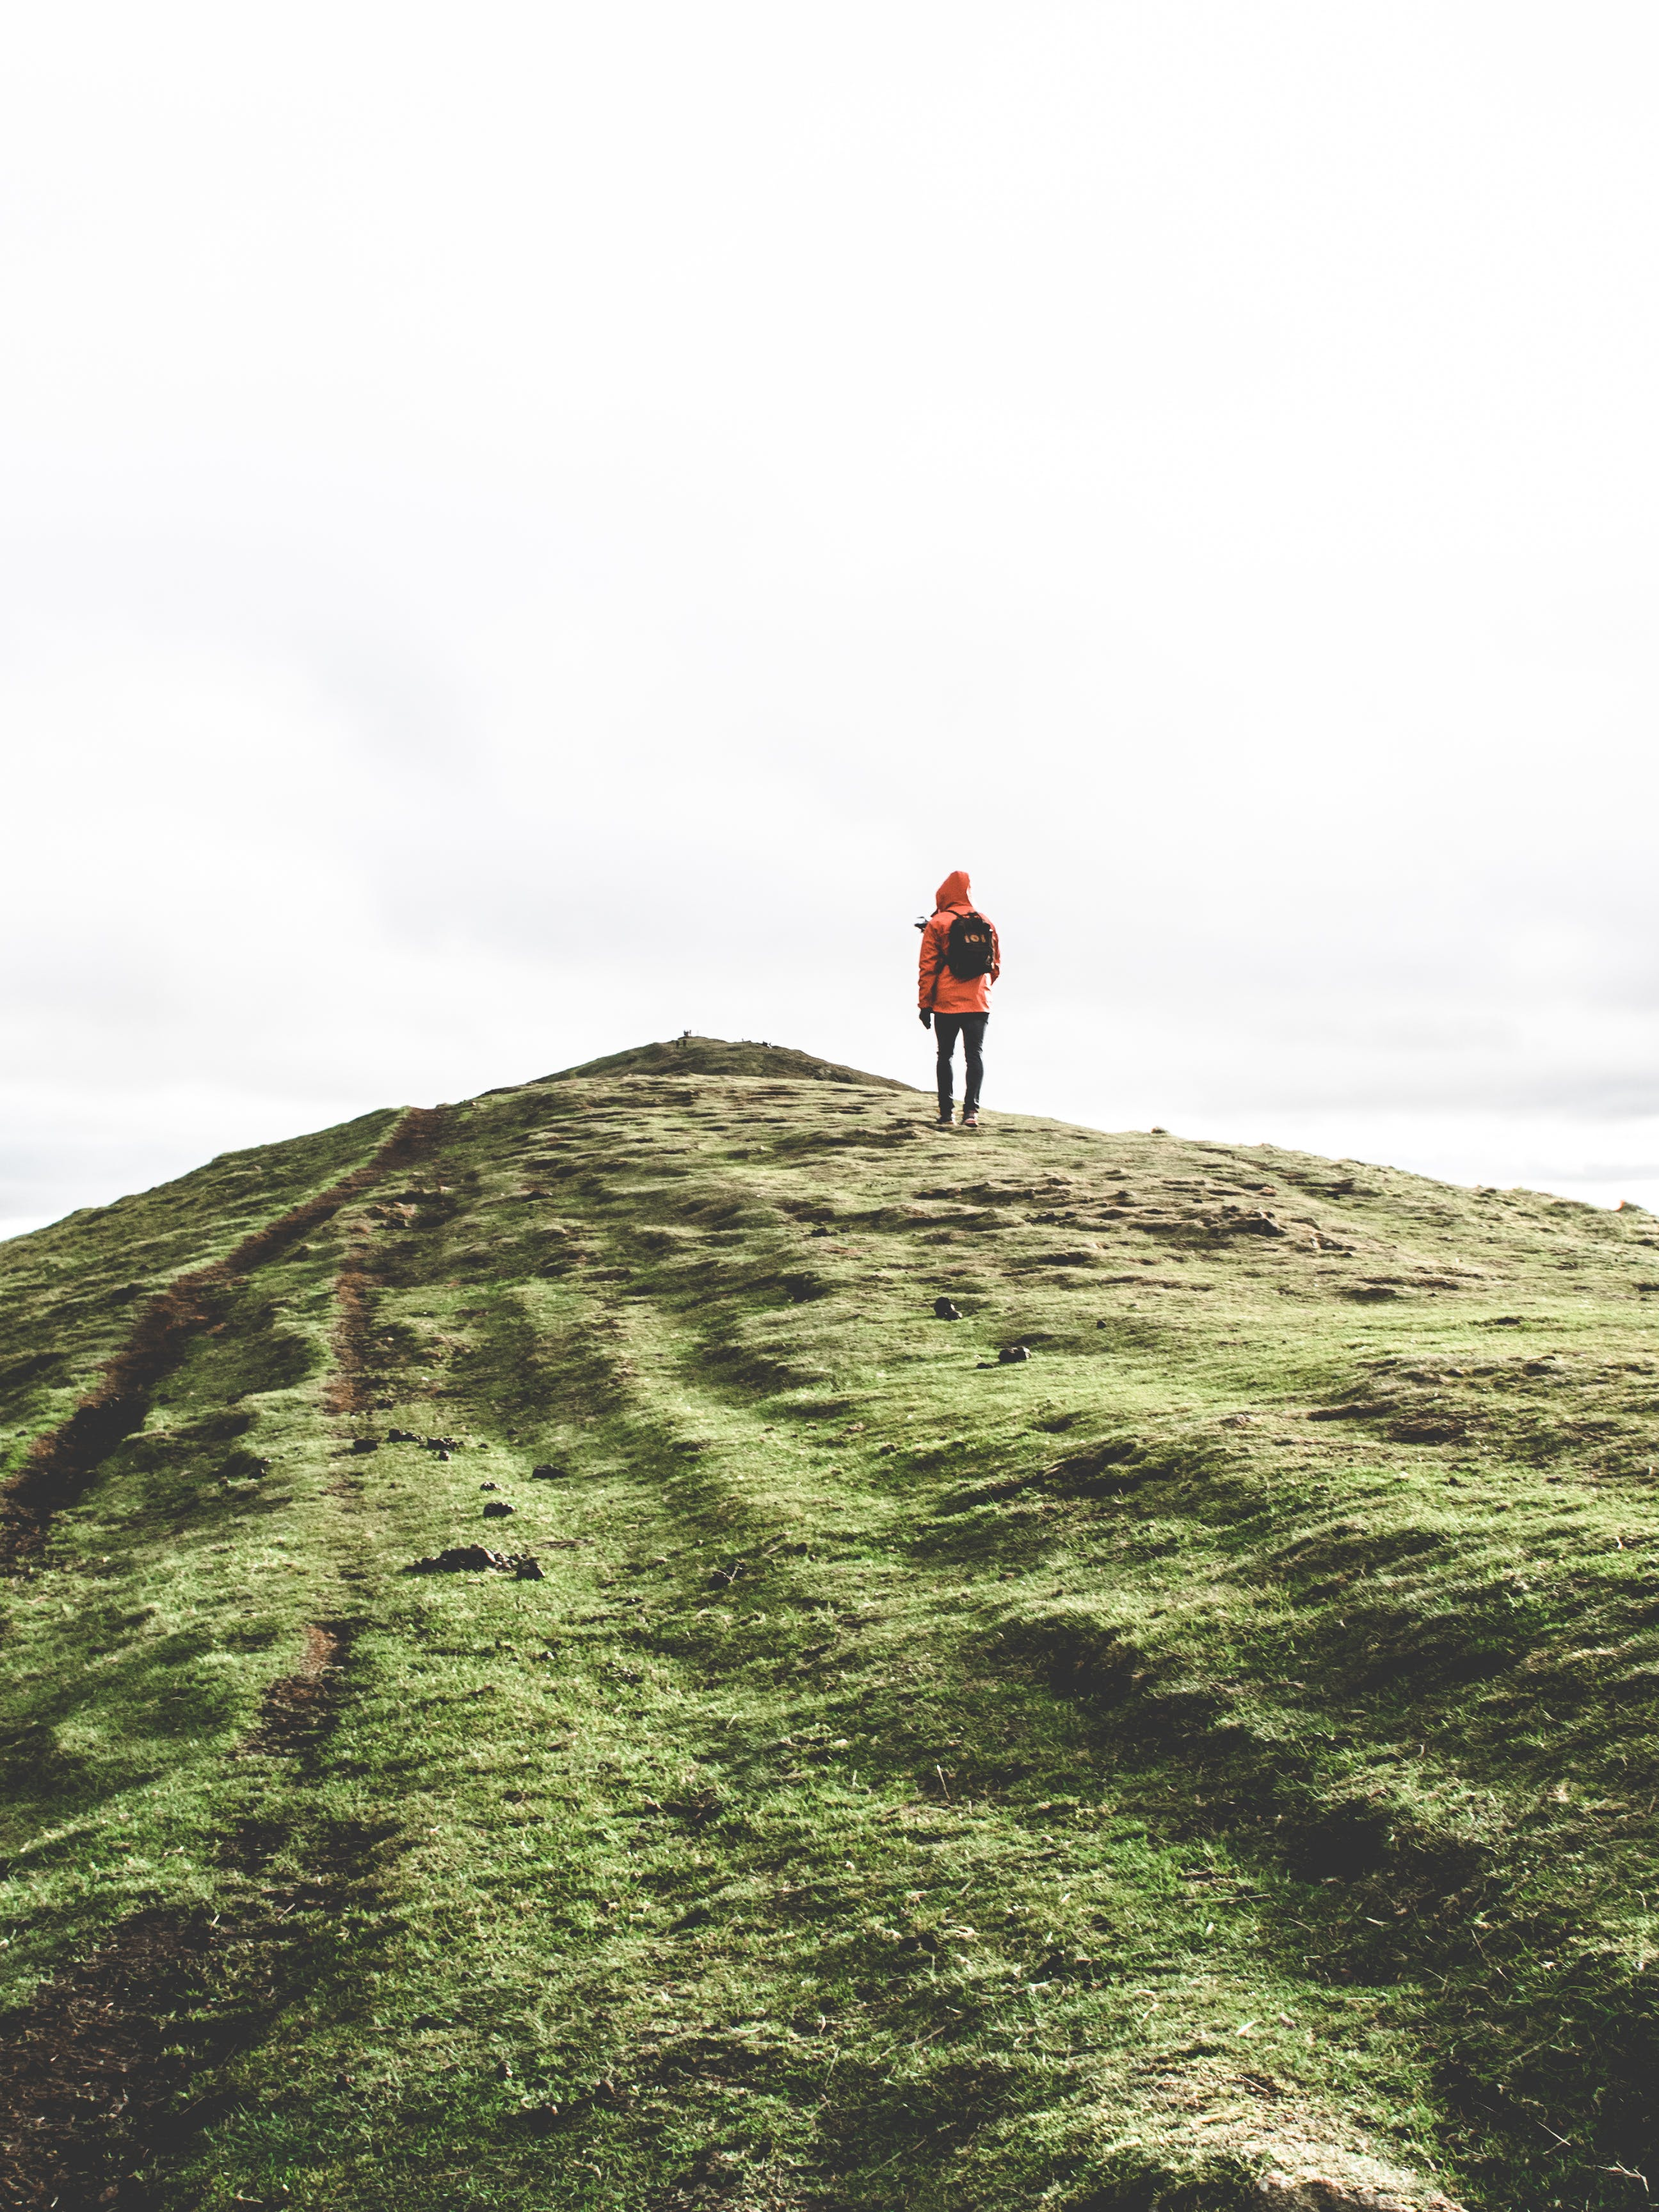 Person Wearing Orange Hoodie Standing on Green Mountain Under White Sky